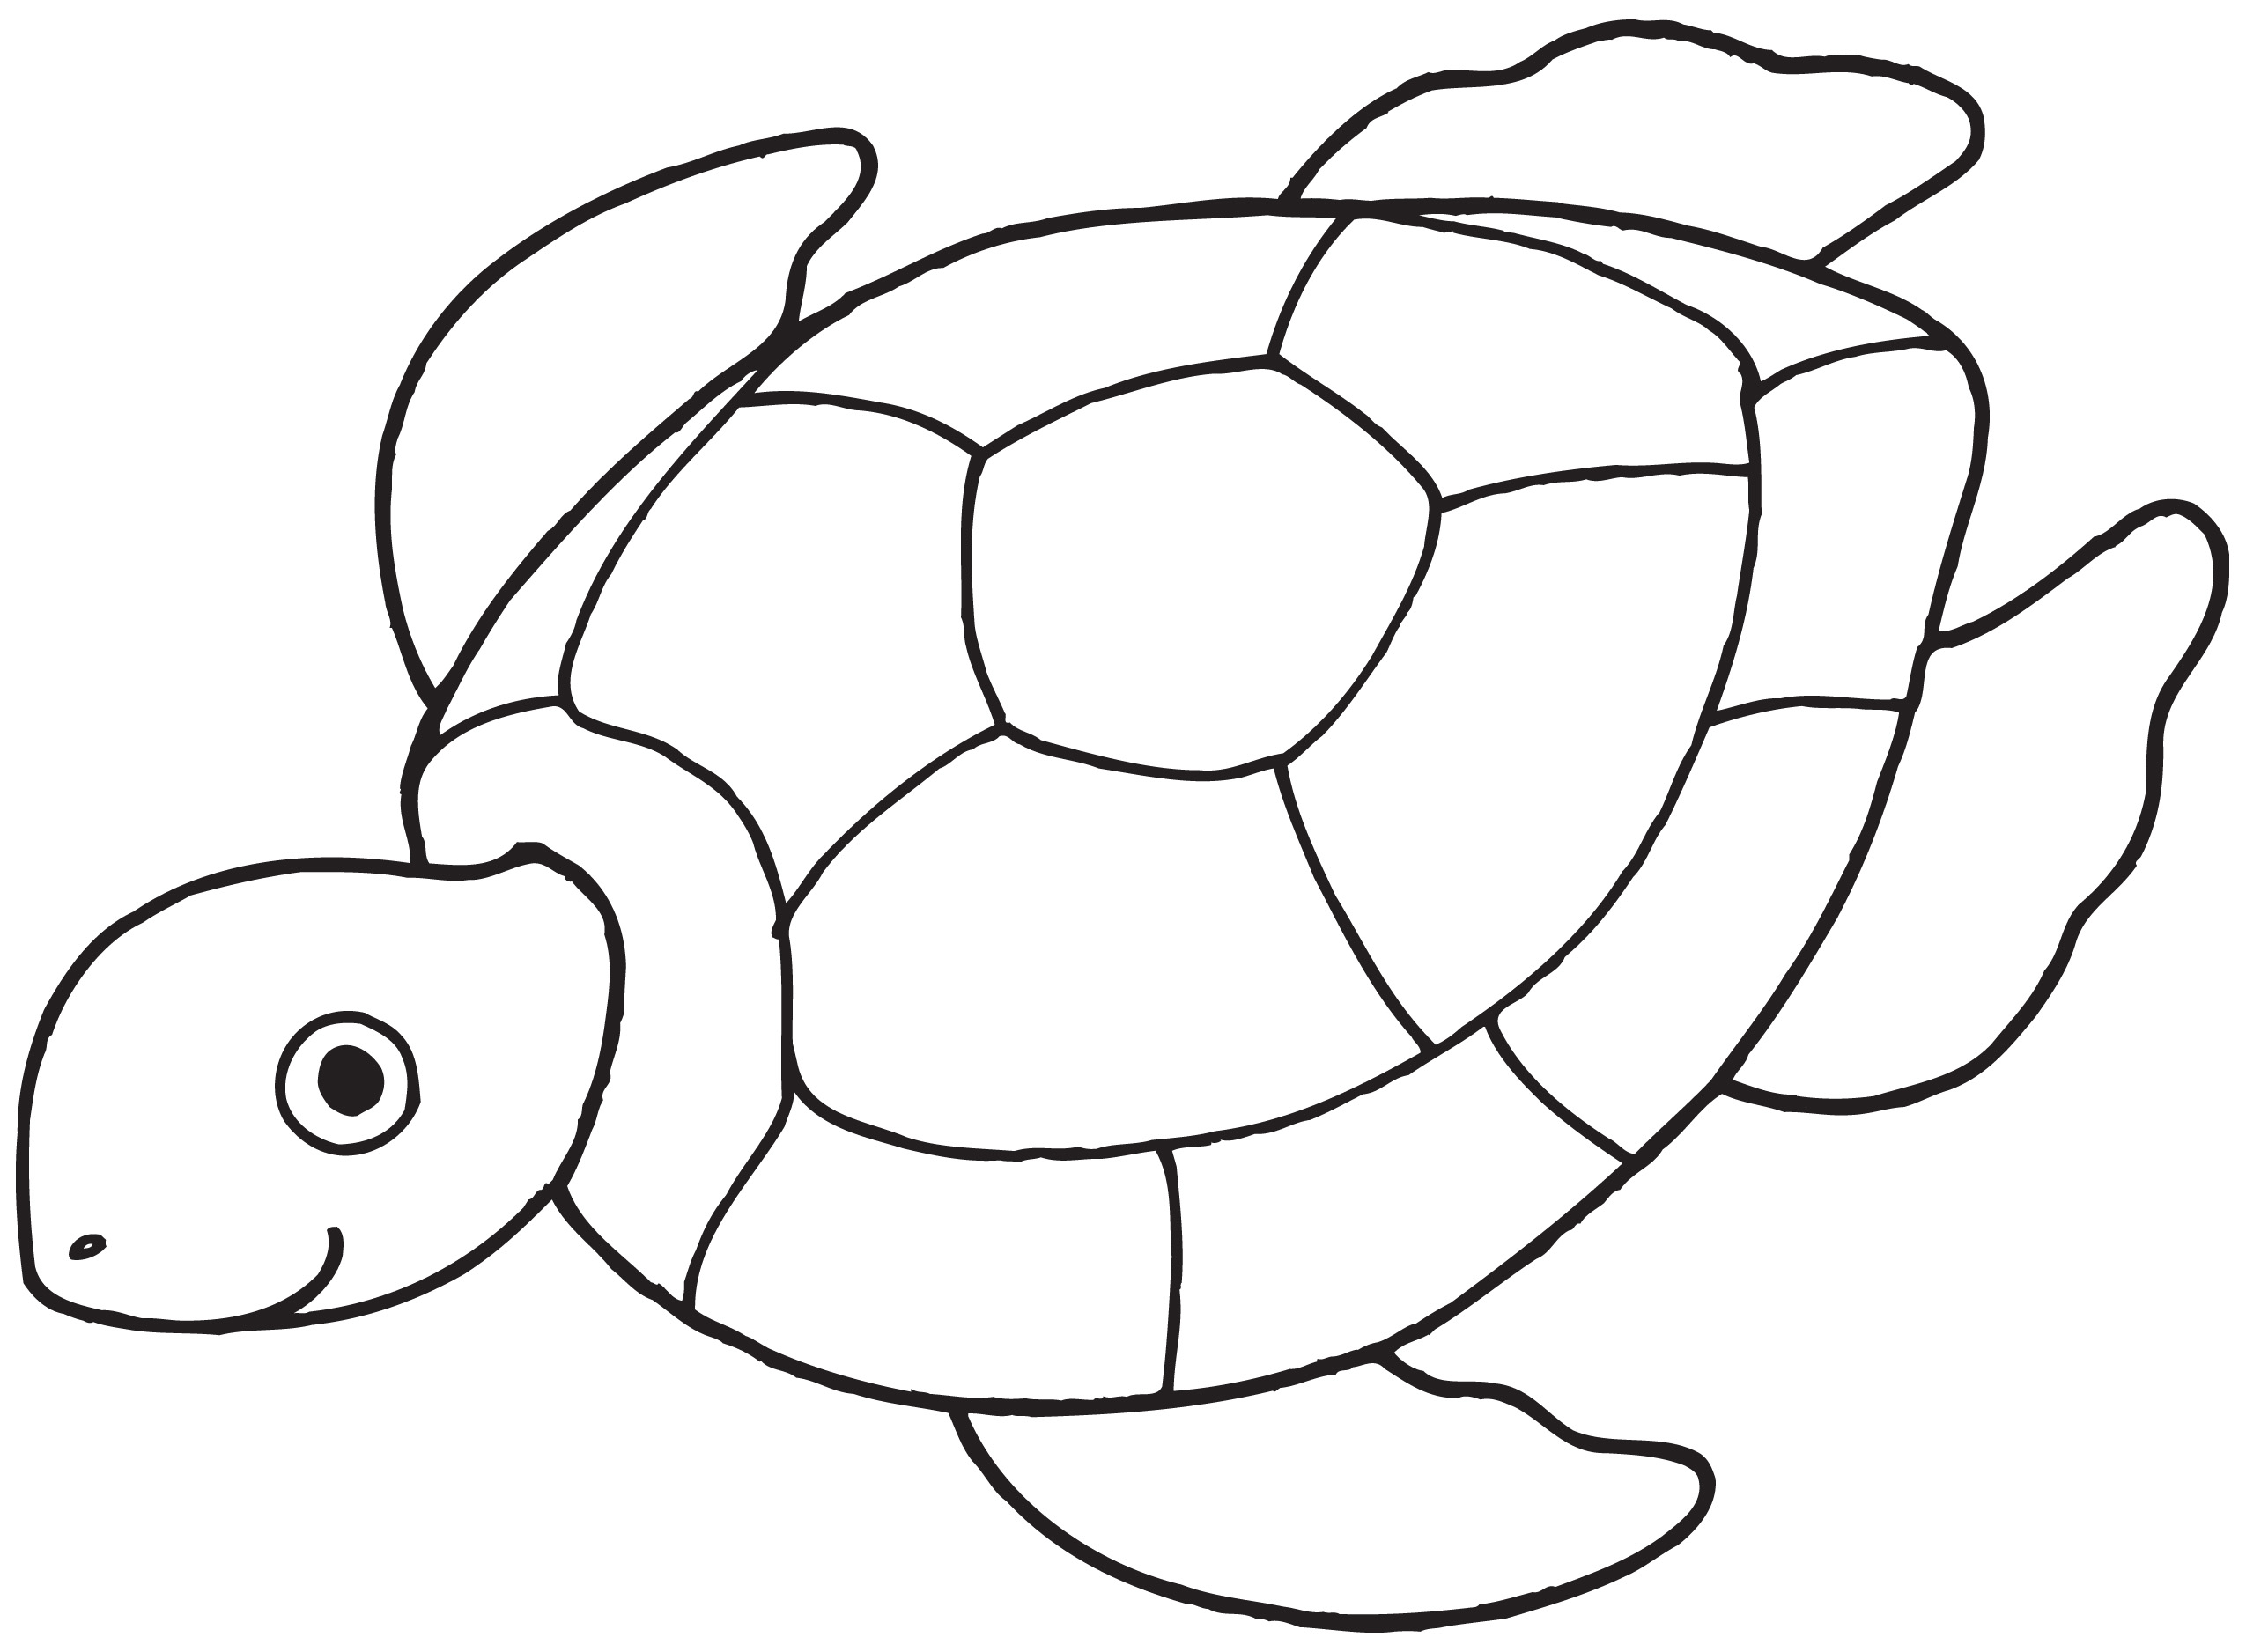 2550x1876 Simple Sea Turtle Drawing Turtle Clip Art Sea Turtle Clip Art